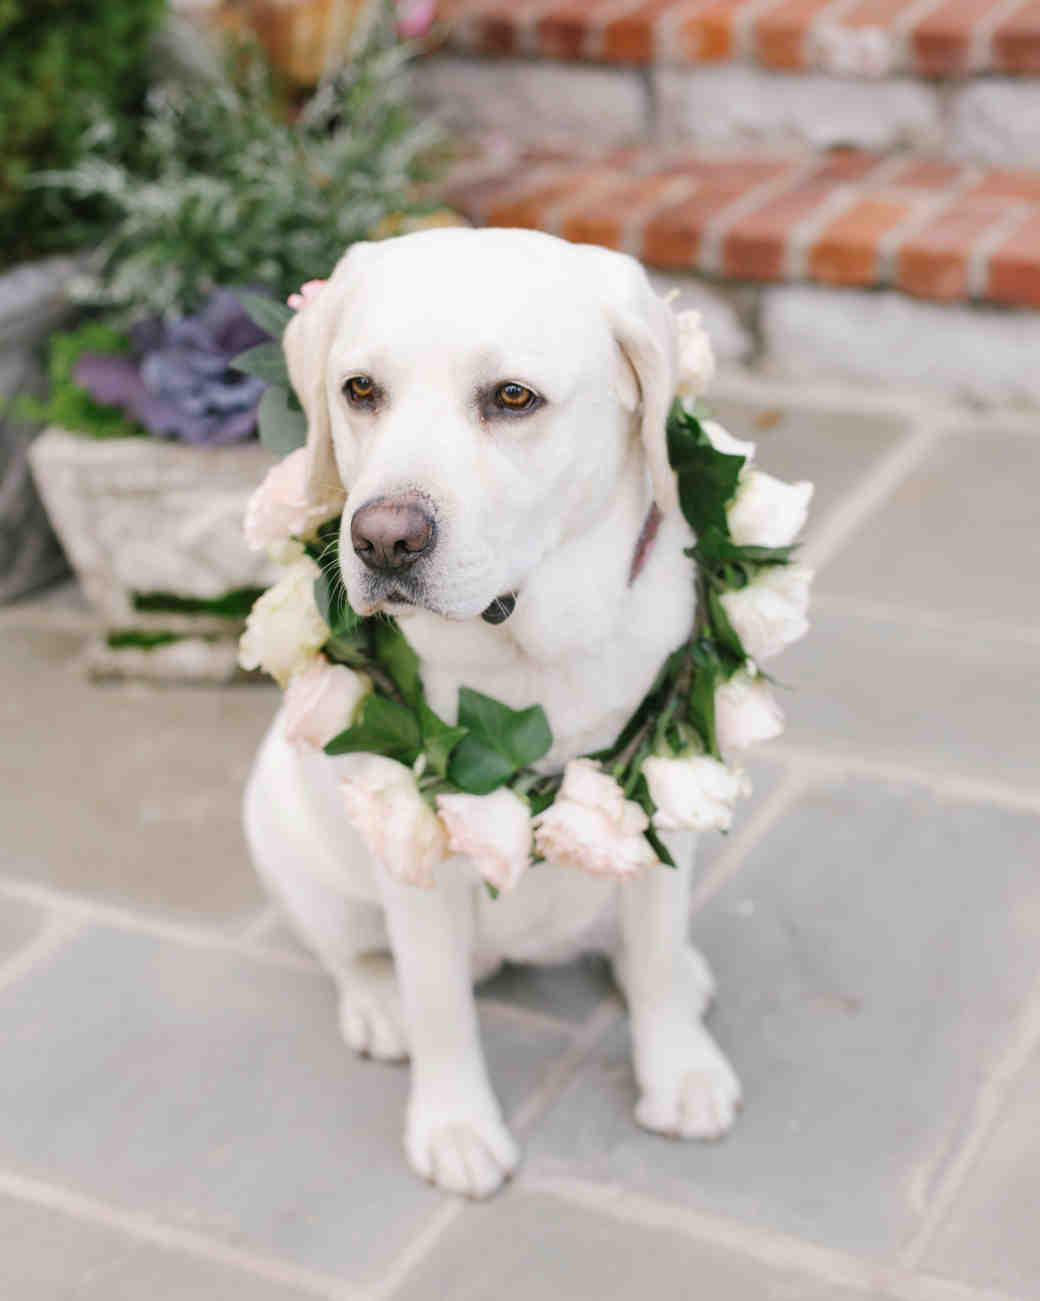 Floral Wreath for a Dog